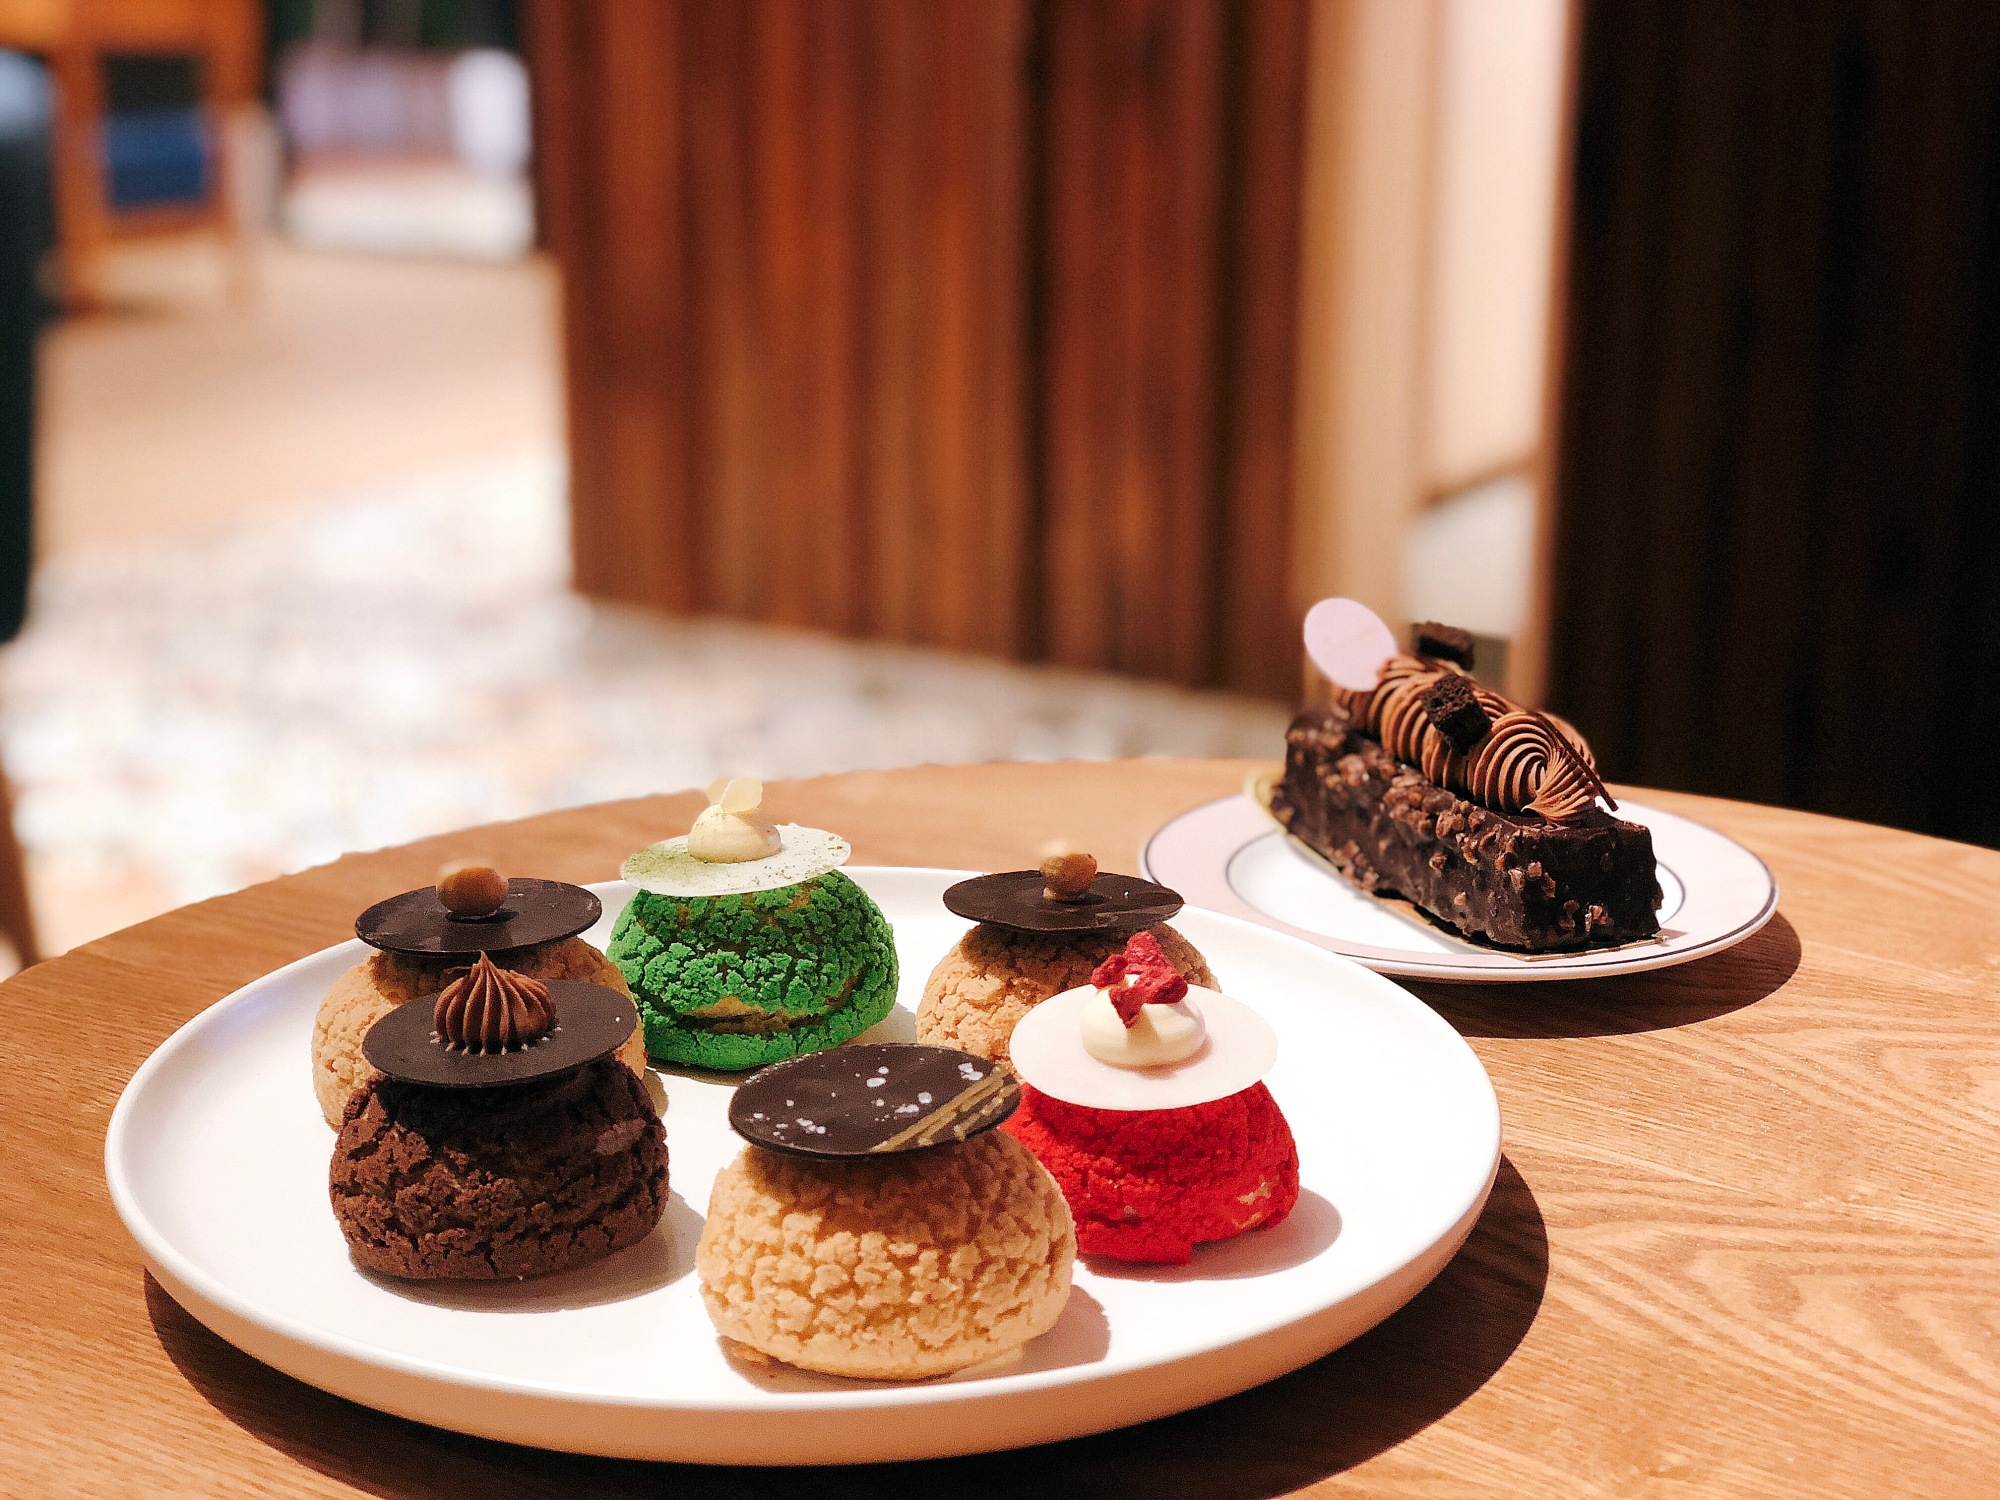 the-nat-channel-leclaire-patisserie-union-roastery-citta-mall-petaling-jaya-pj-dessert-cafe-choux-pastry